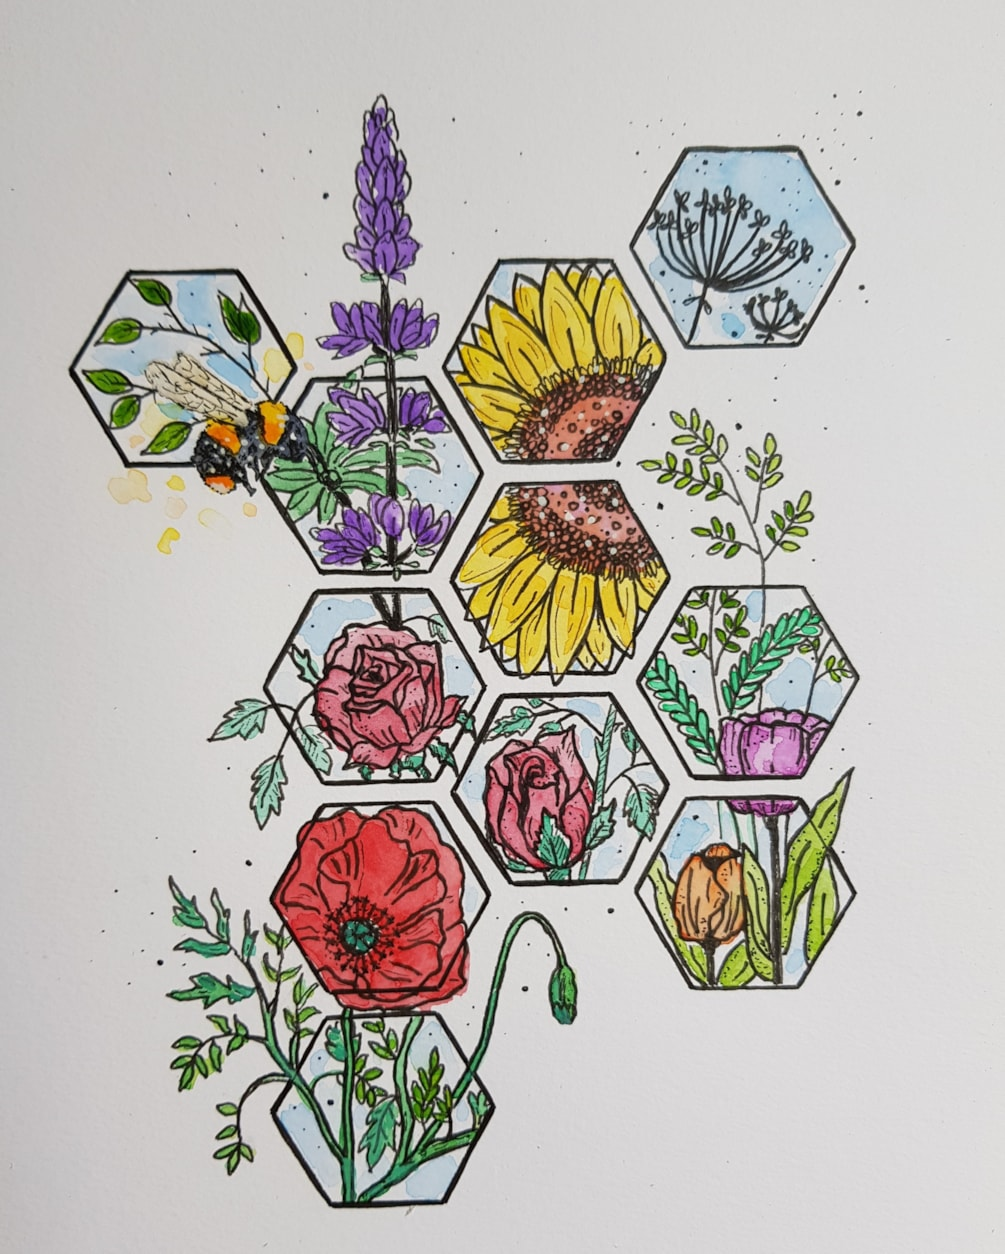 The bee and the Honeycomb flowers